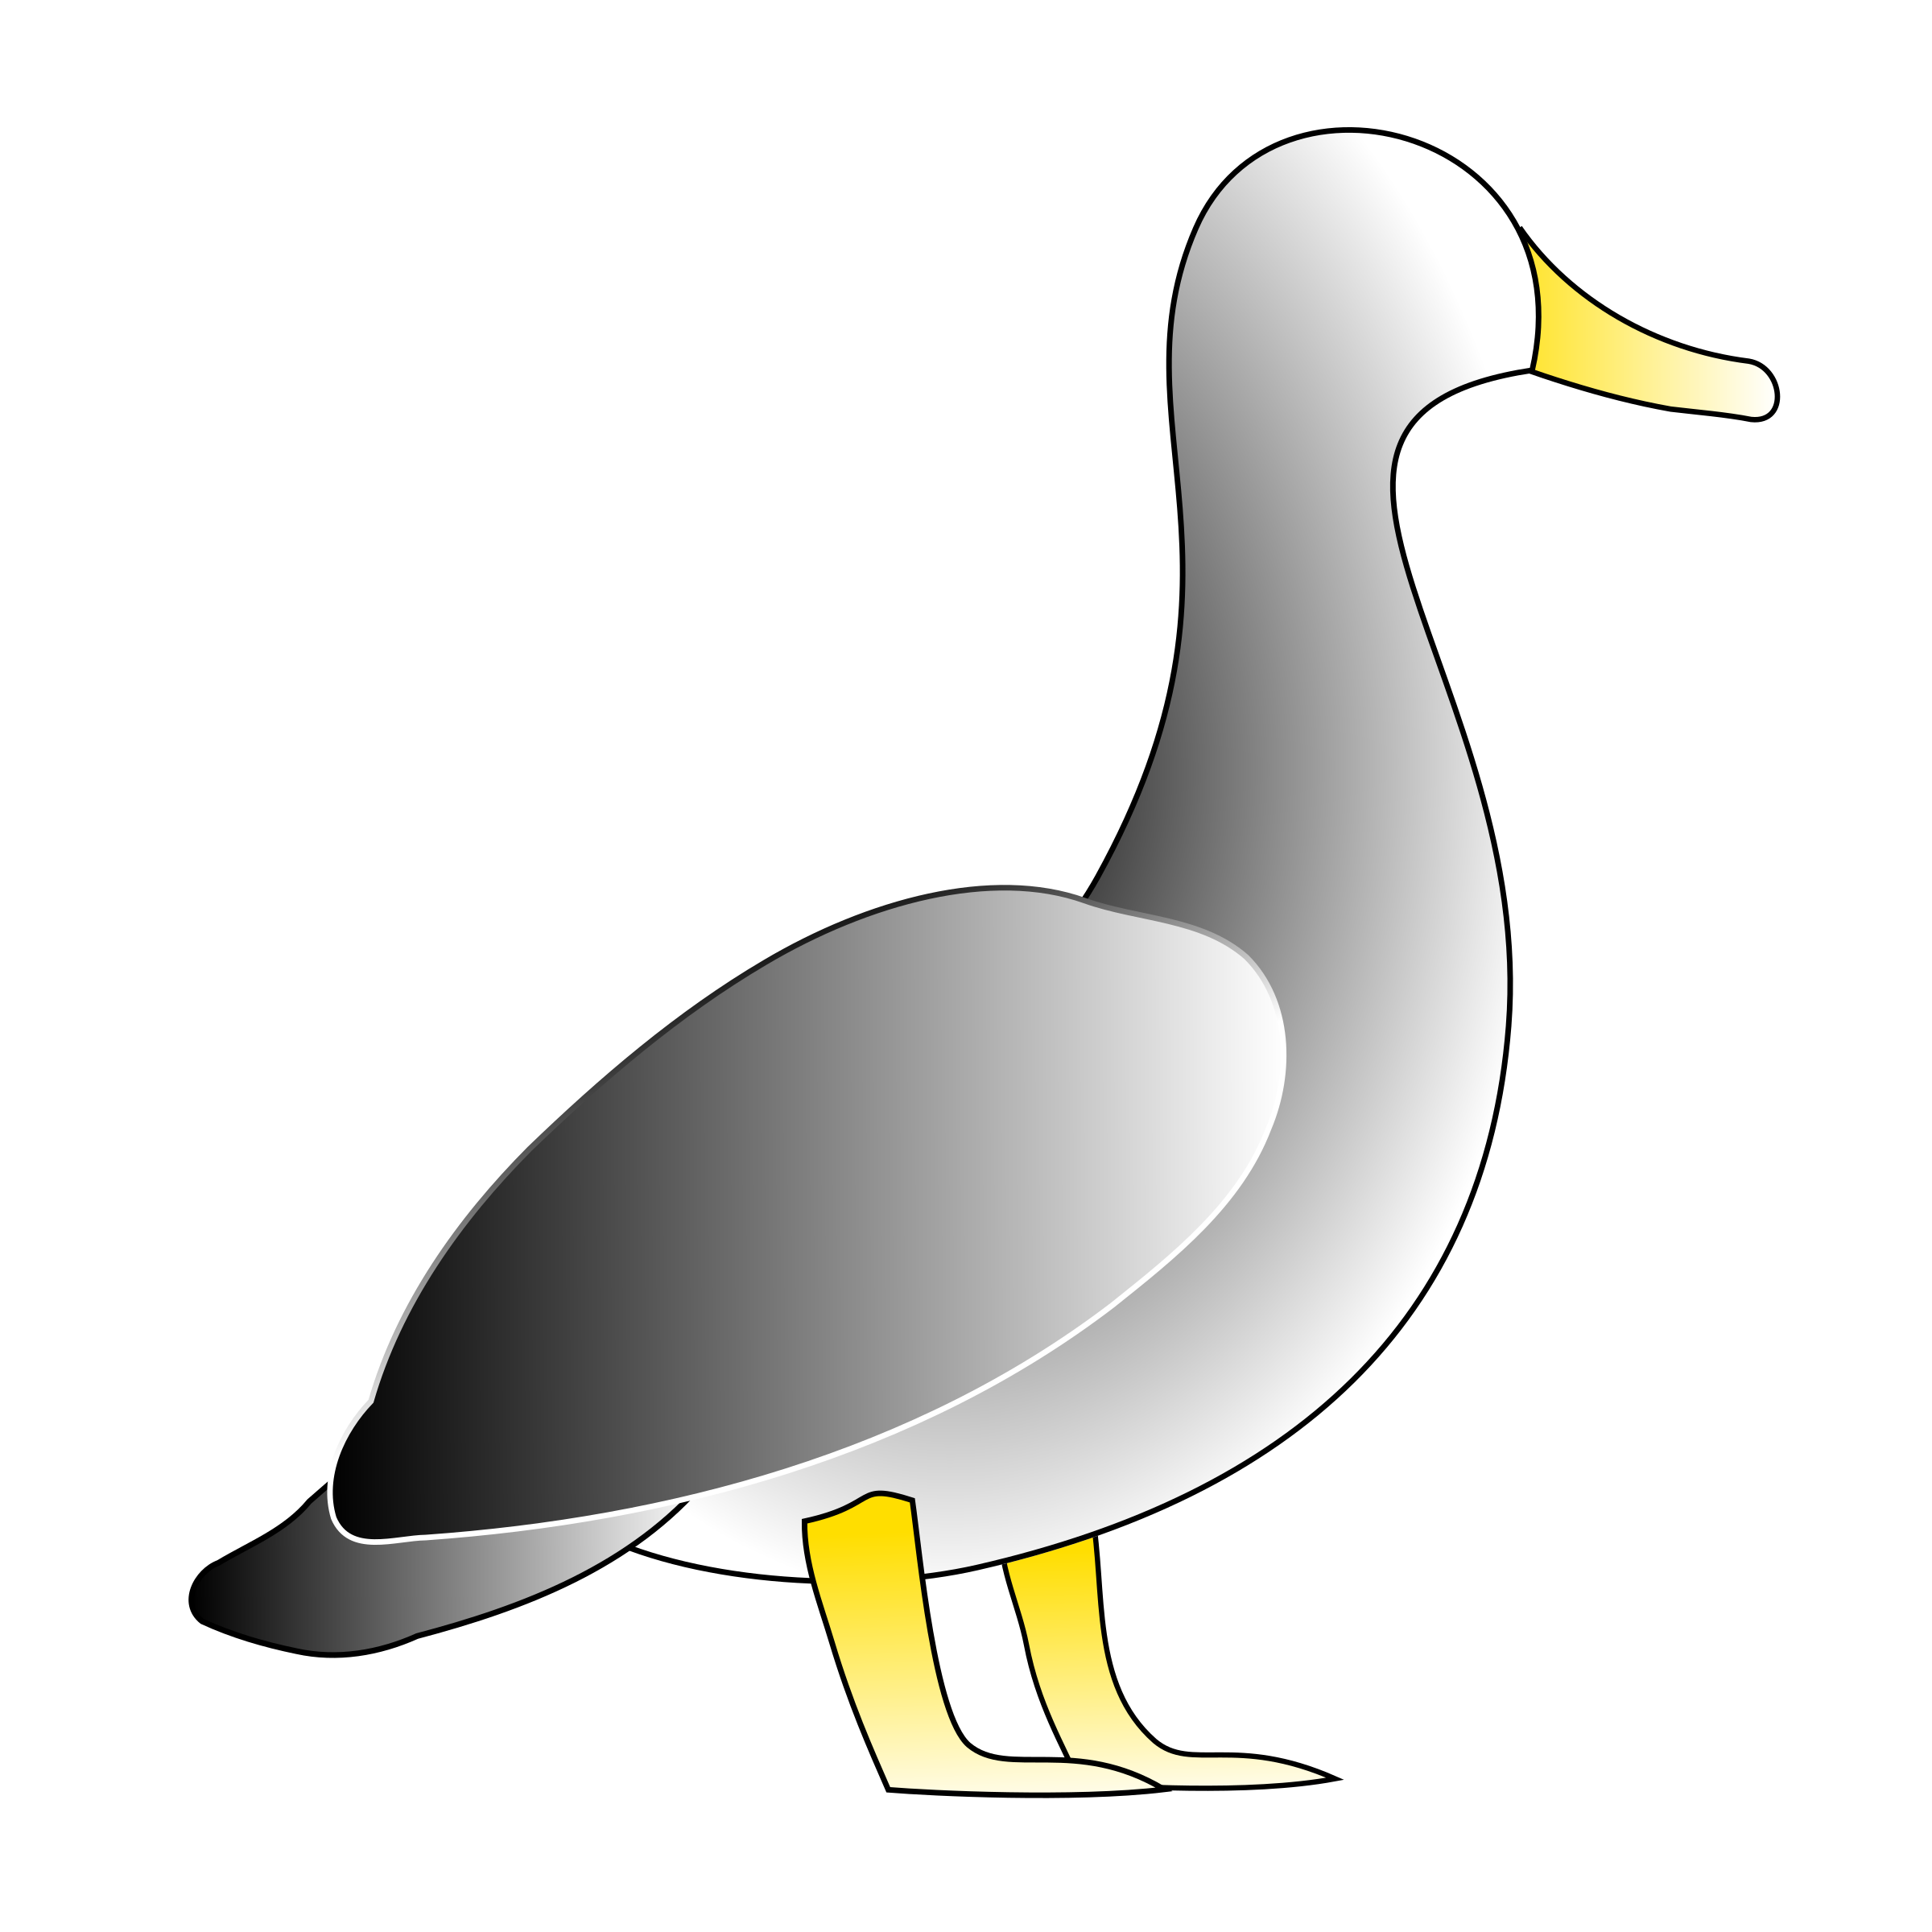 Jonathon's Duck by Jonathon